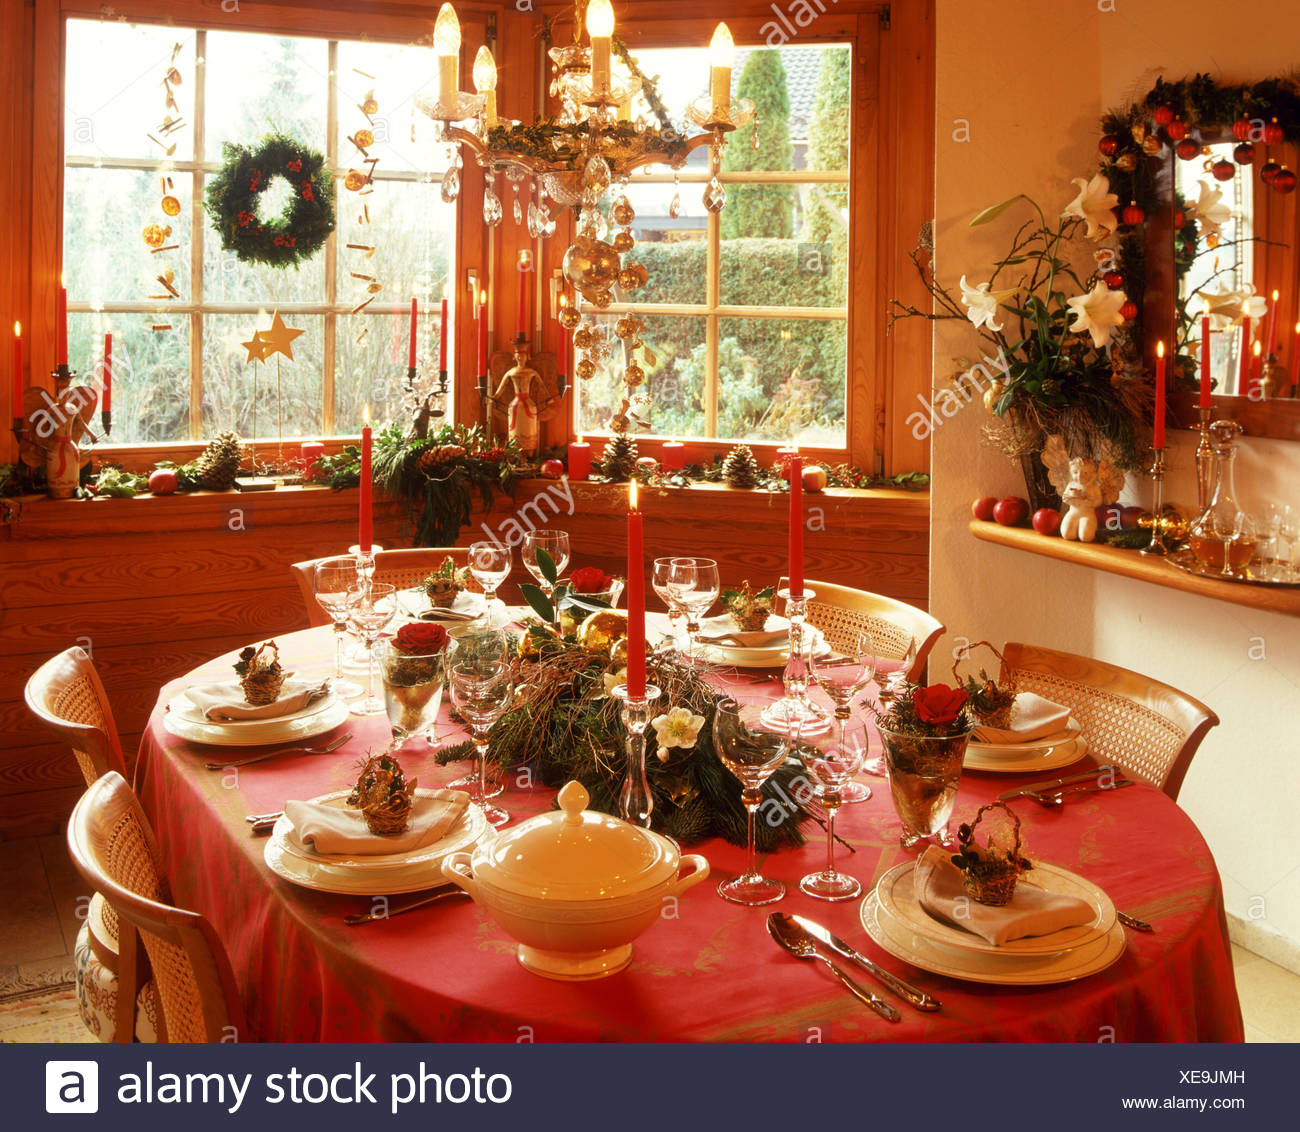 weihnachts tisch mit kerzen und blumen arrangement stockfoto bild 284183329 alamy. Black Bedroom Furniture Sets. Home Design Ideas